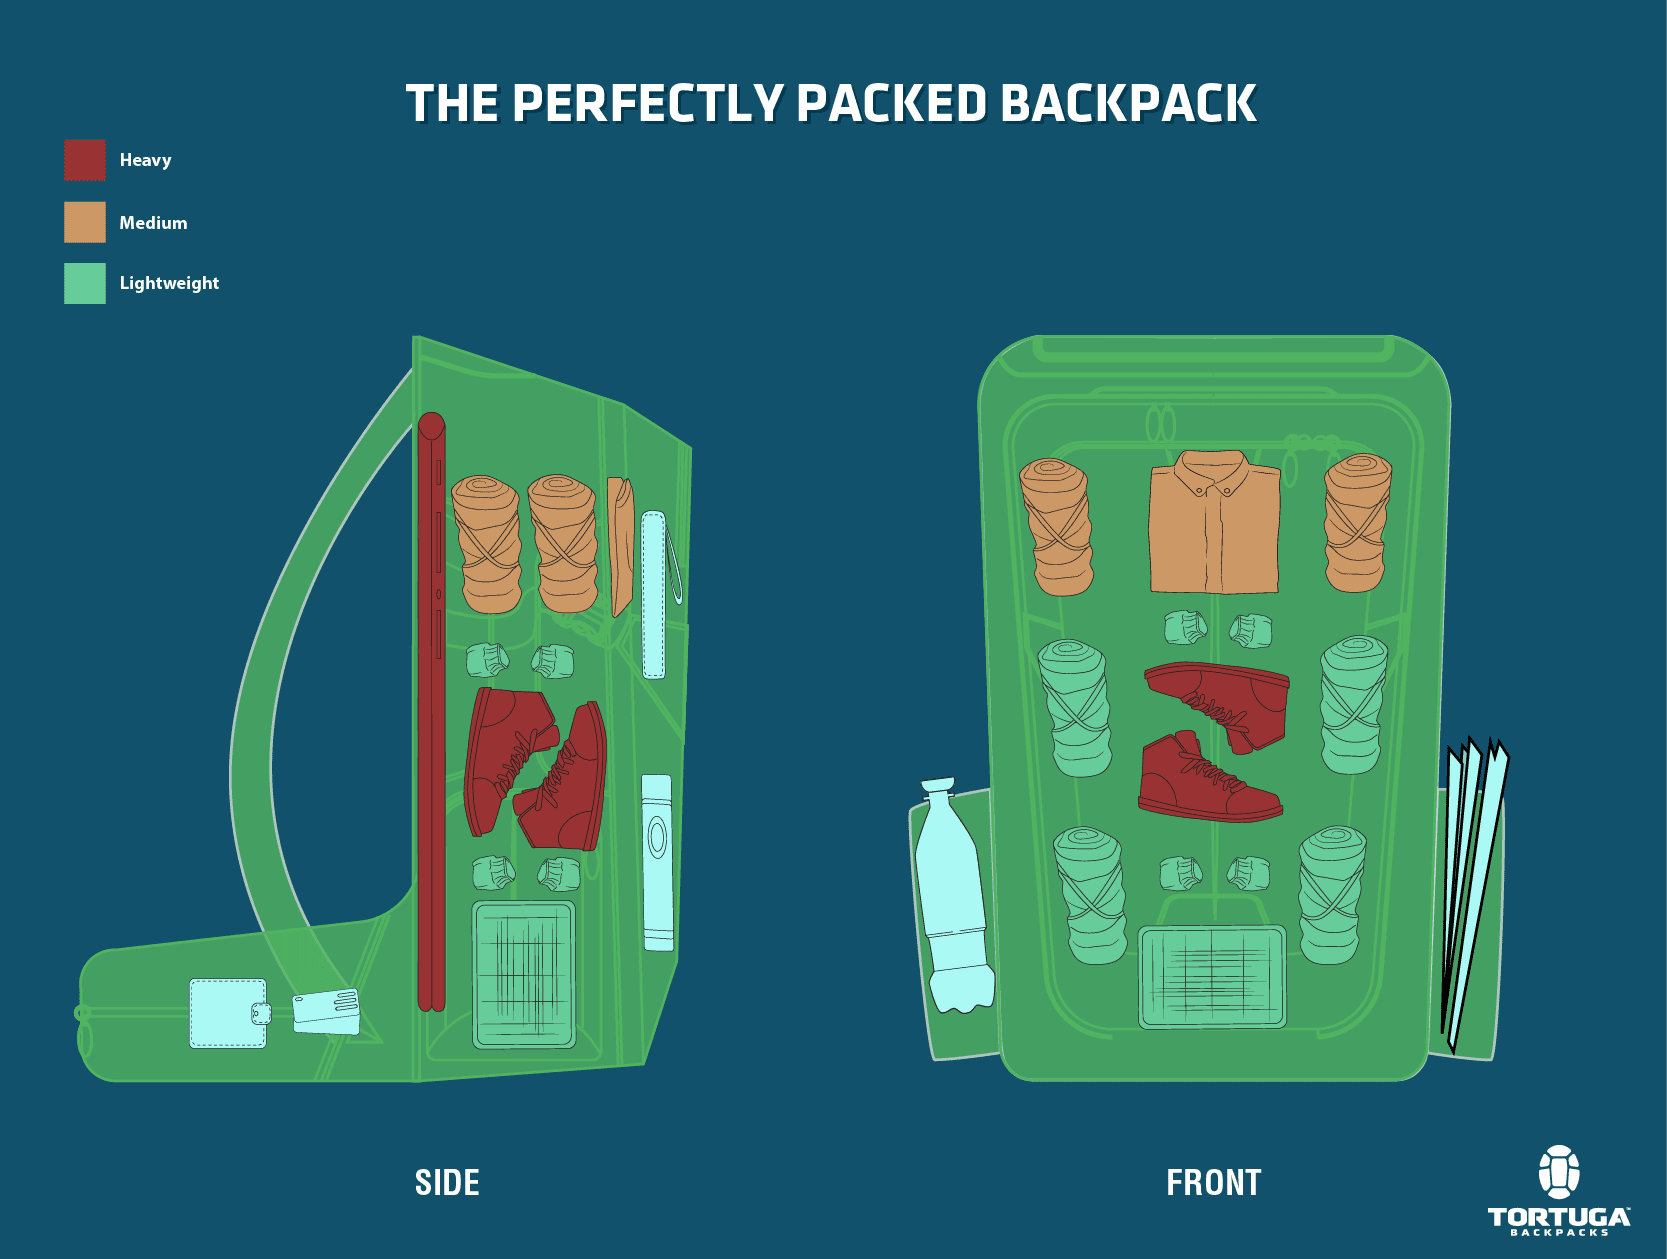 How to Pack Shoes in Your Backpack - Tortuga Backpacks Blog